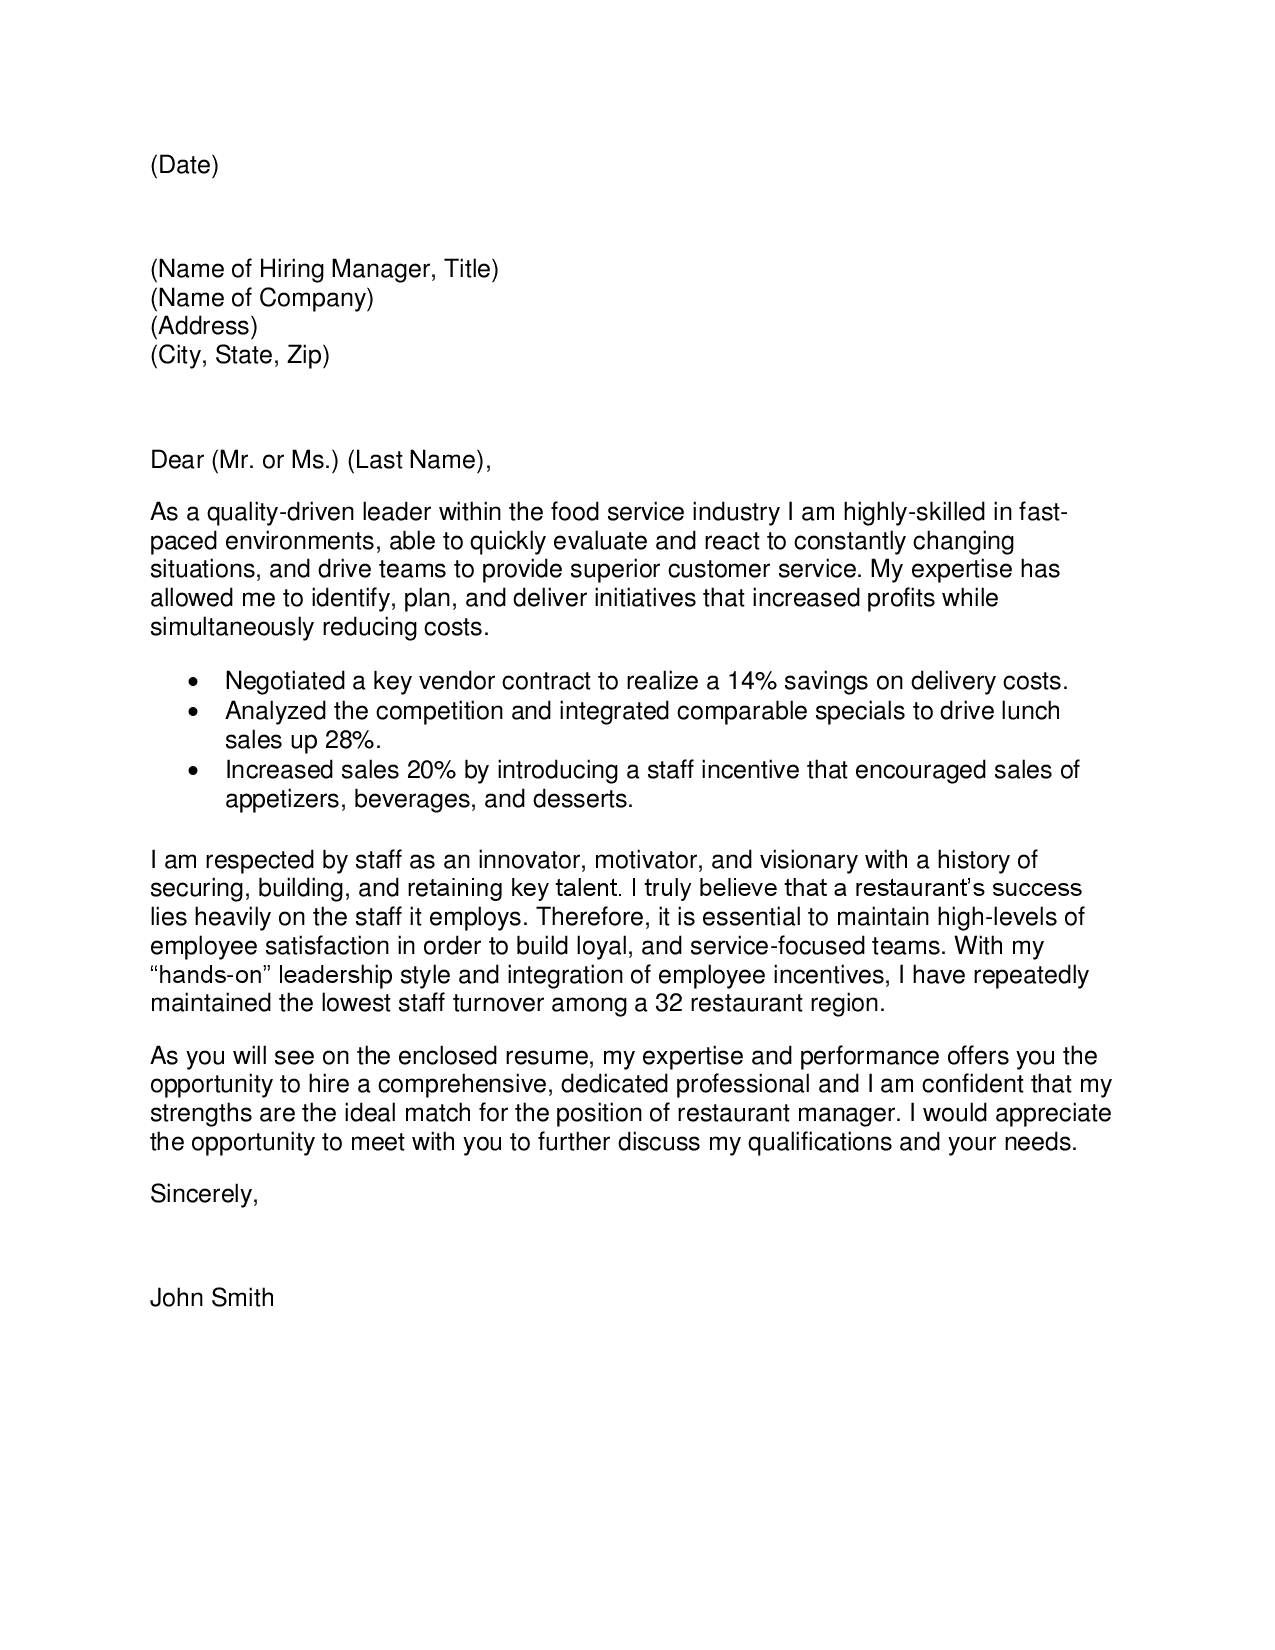 Doc Bid Proposal Letter Bid Proposal Cover Letter Cover Letter Research  Proposal ...